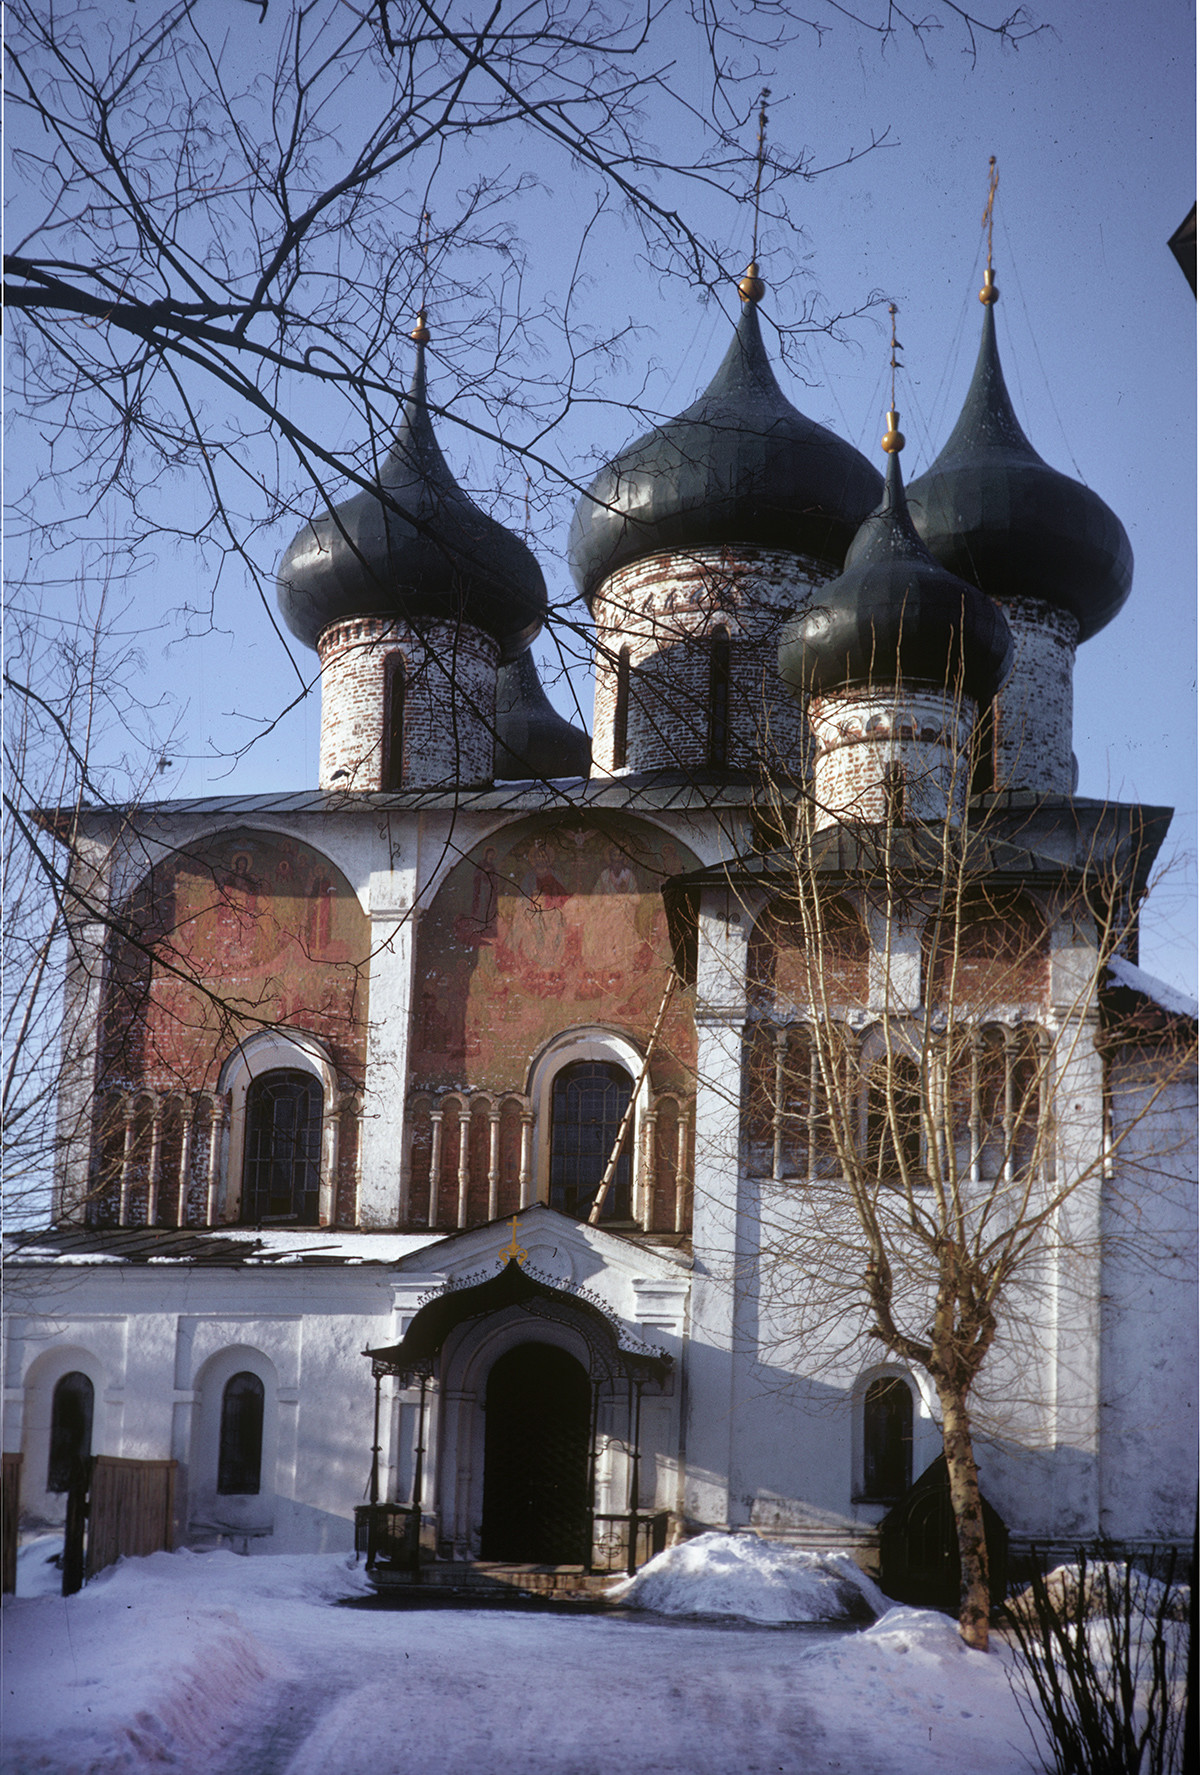 Savior-St. Evfimy Monastery. Cathedral of the Transfiguration of the Savior, south facade with remnants of frescoes (subsequently whitewashed). Right foreground: early 16th-century Chapel of St. Evfimy. March 5, 1972